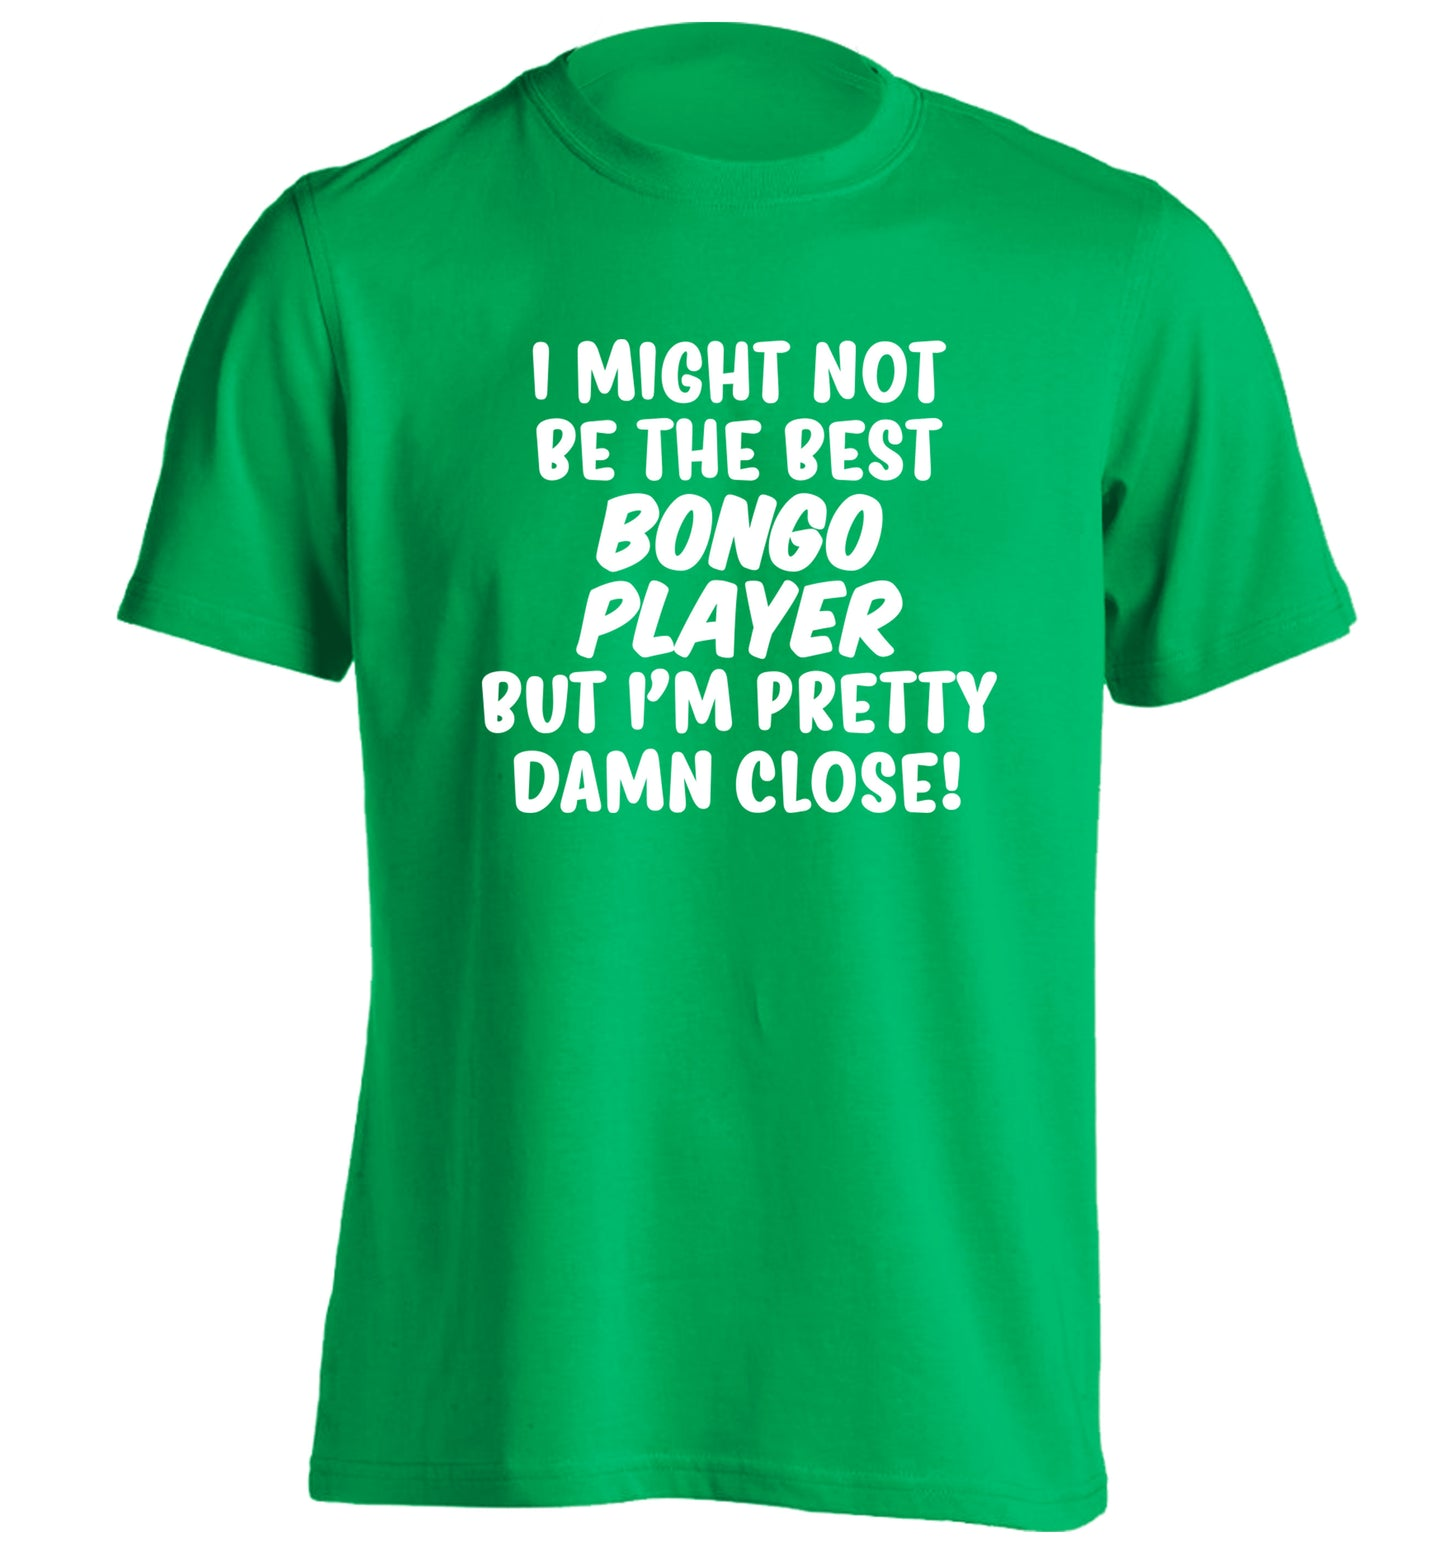 I might not be the best bongo player but I'm pretty close! adults unisexgreen Tshirt 2XL